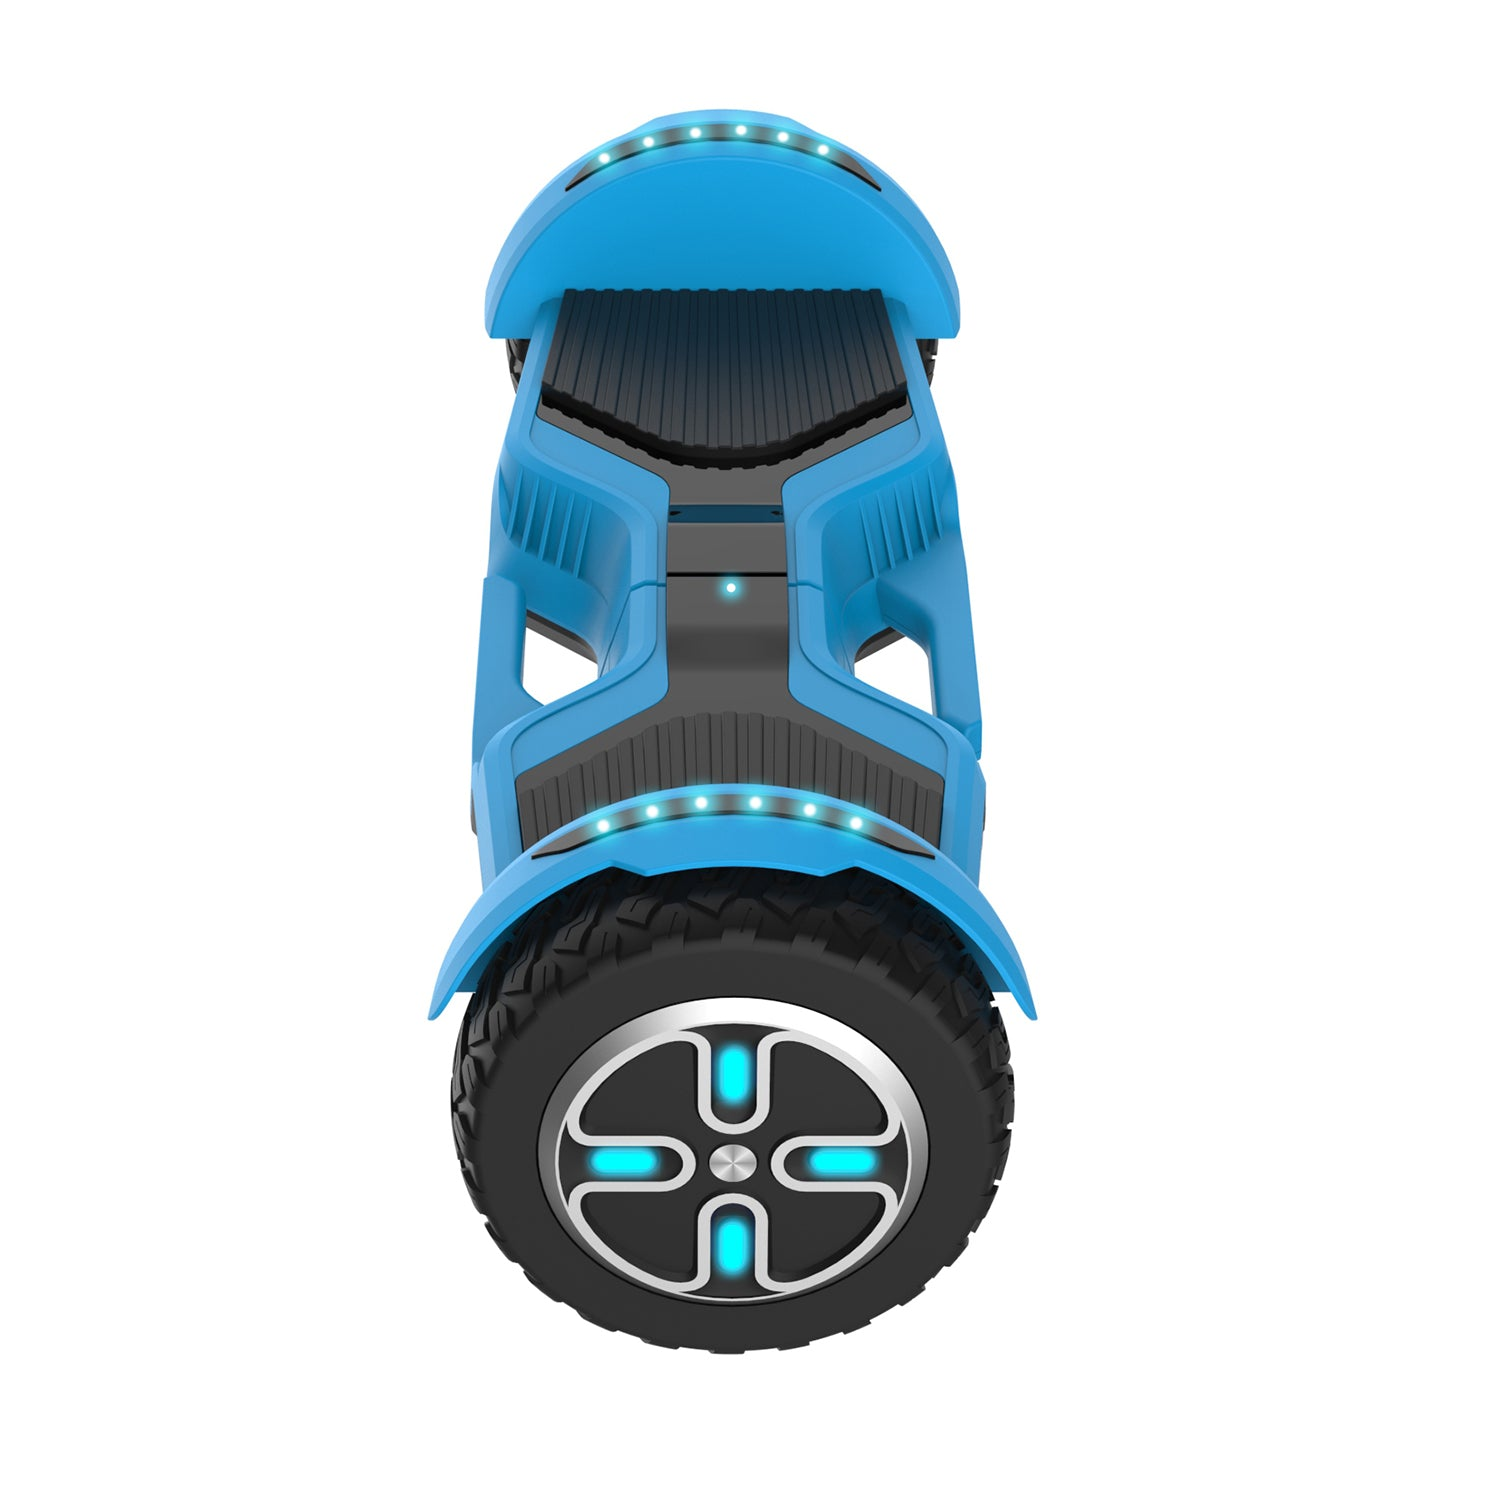 Blue E3 hoverboard side image